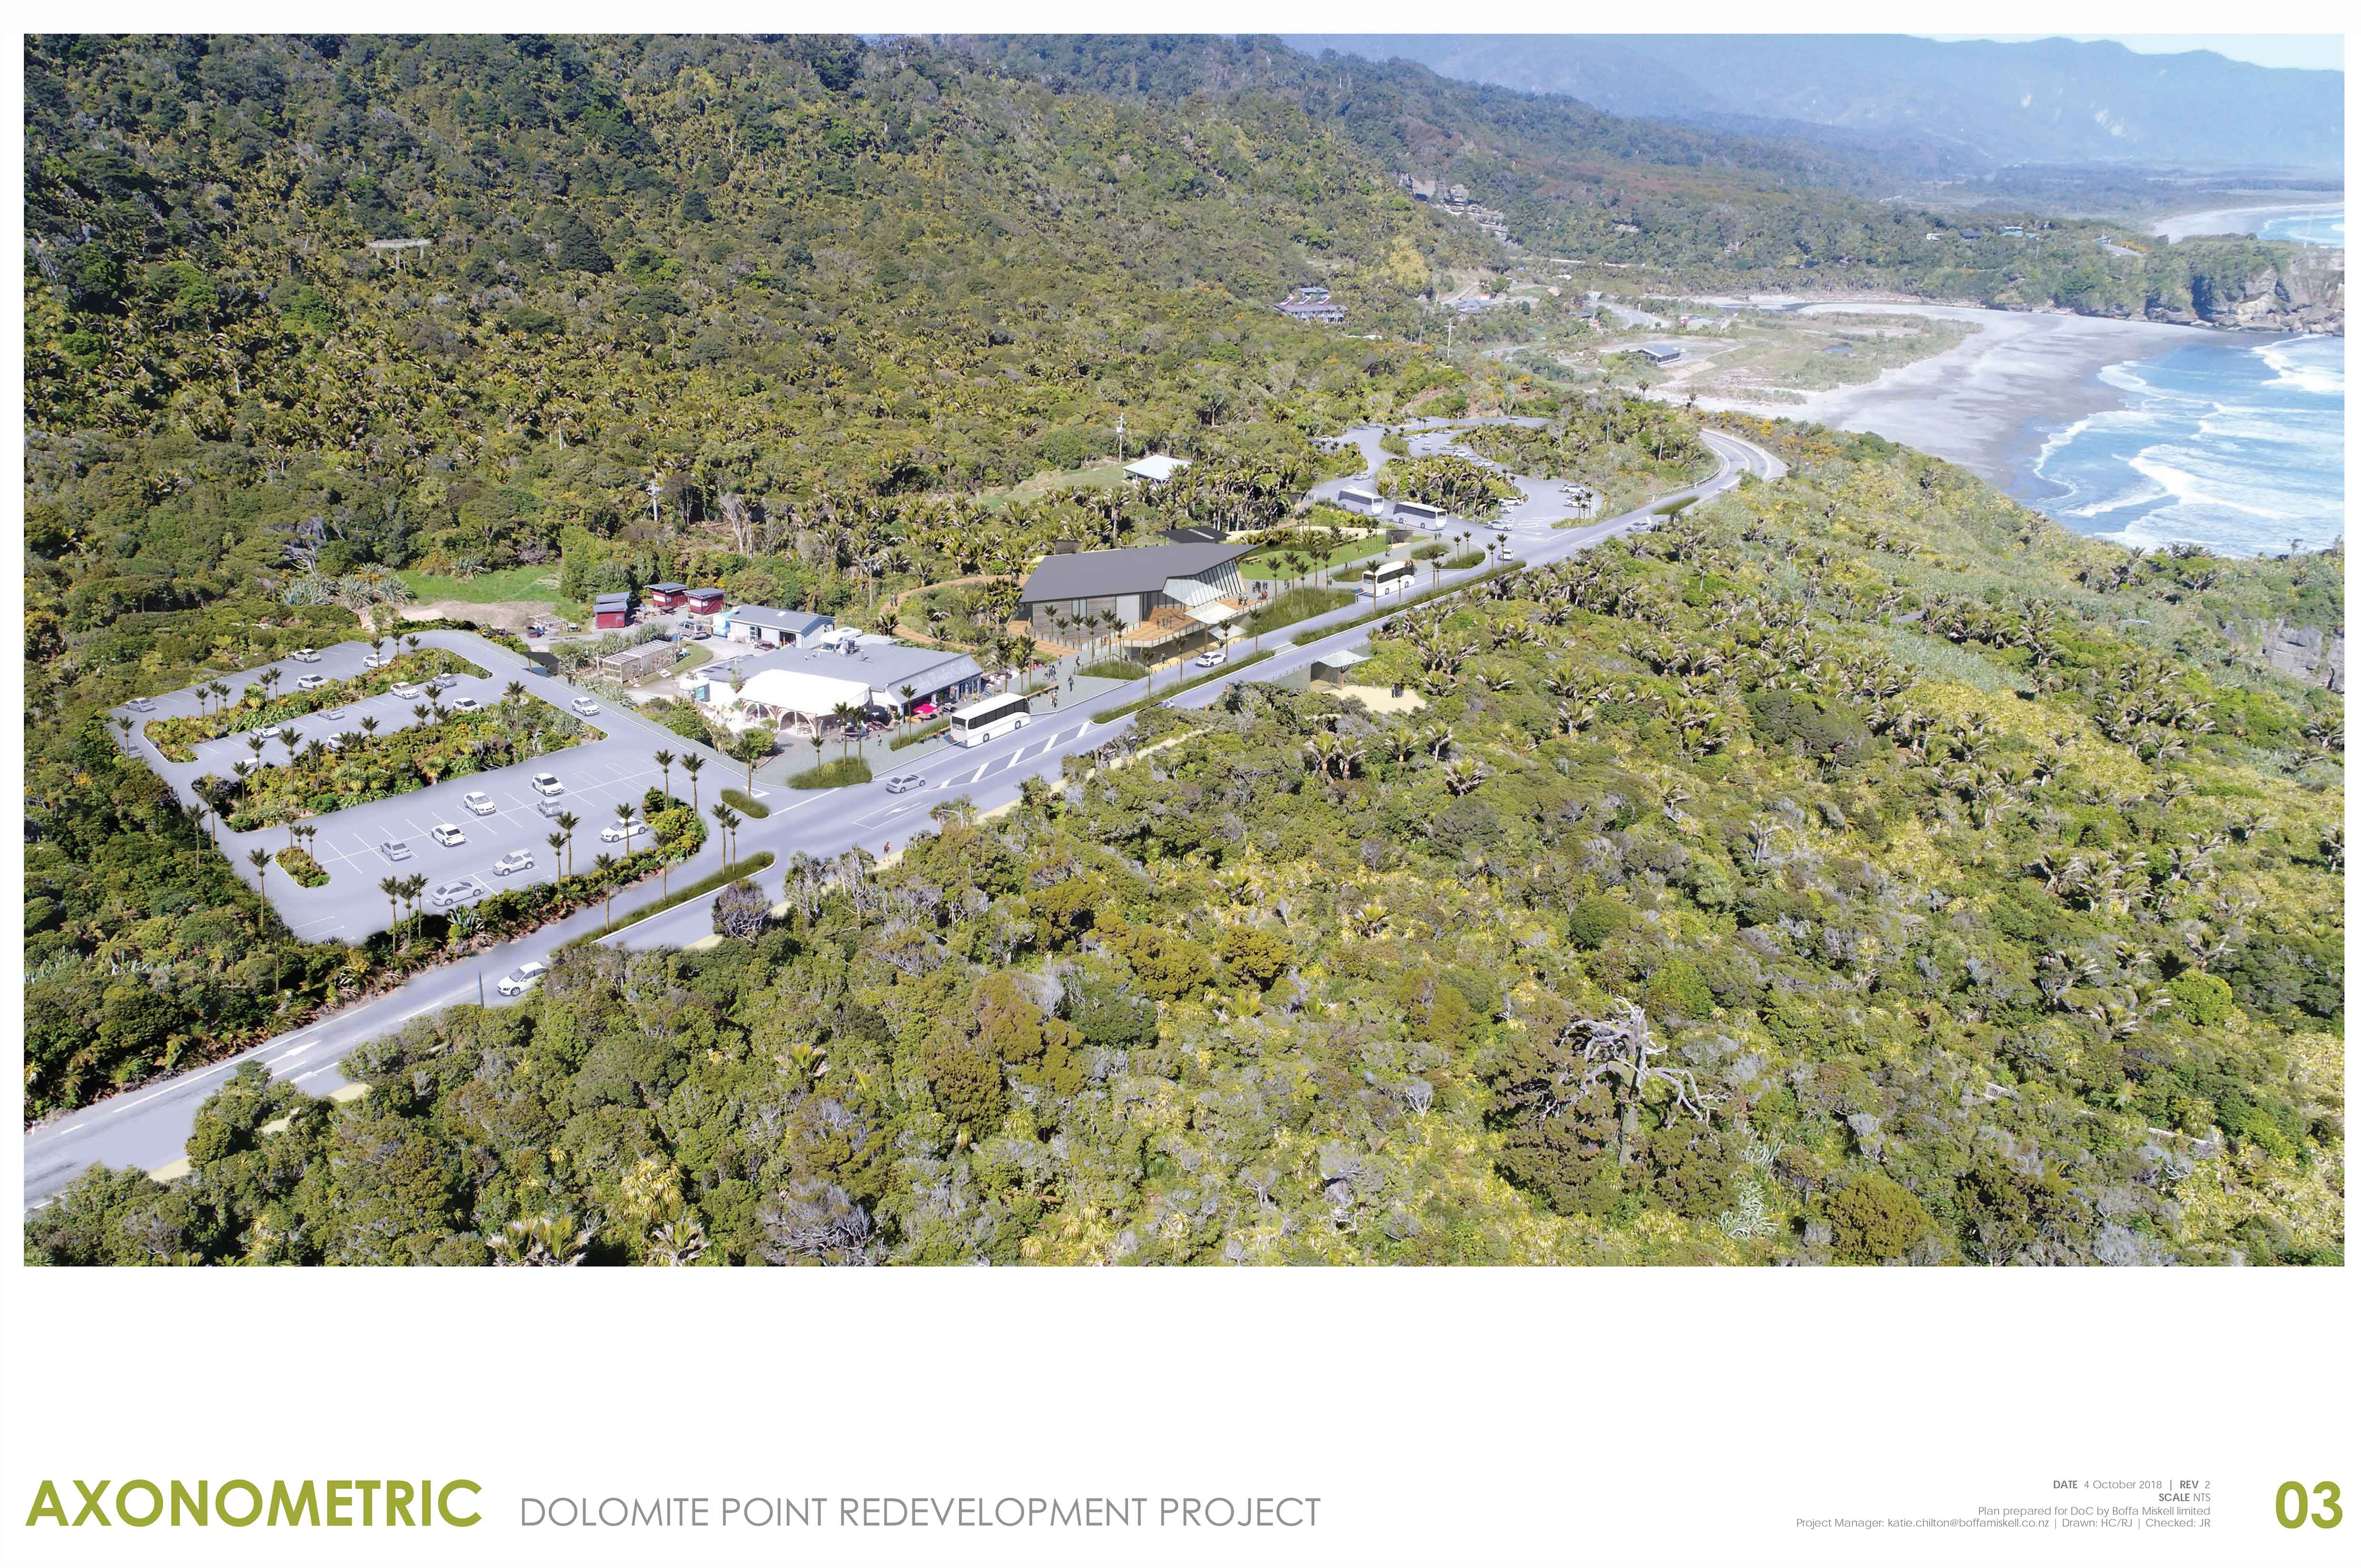 Dolomite Point Redevelopment Project